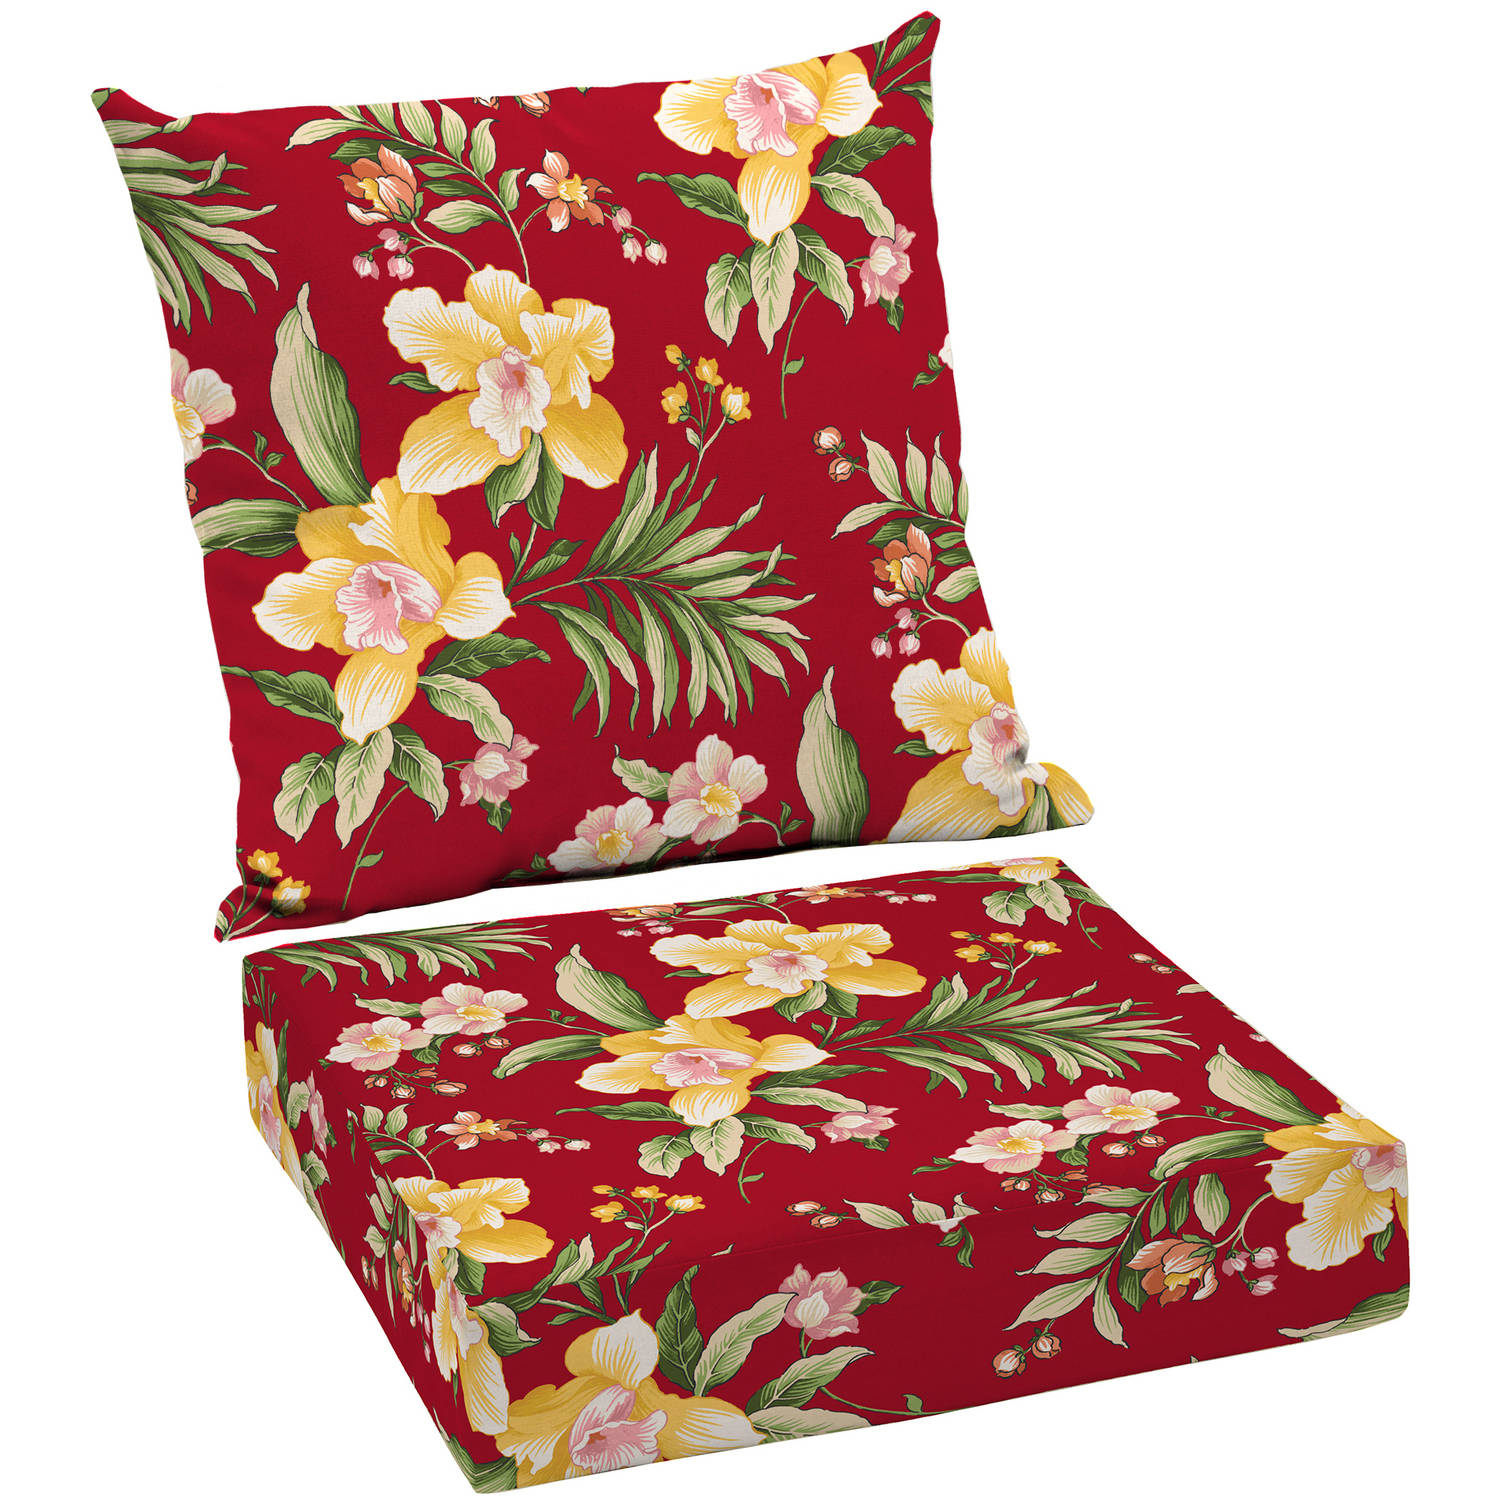 Mainstays Outdoor Patio Deep Seat Cushion Set